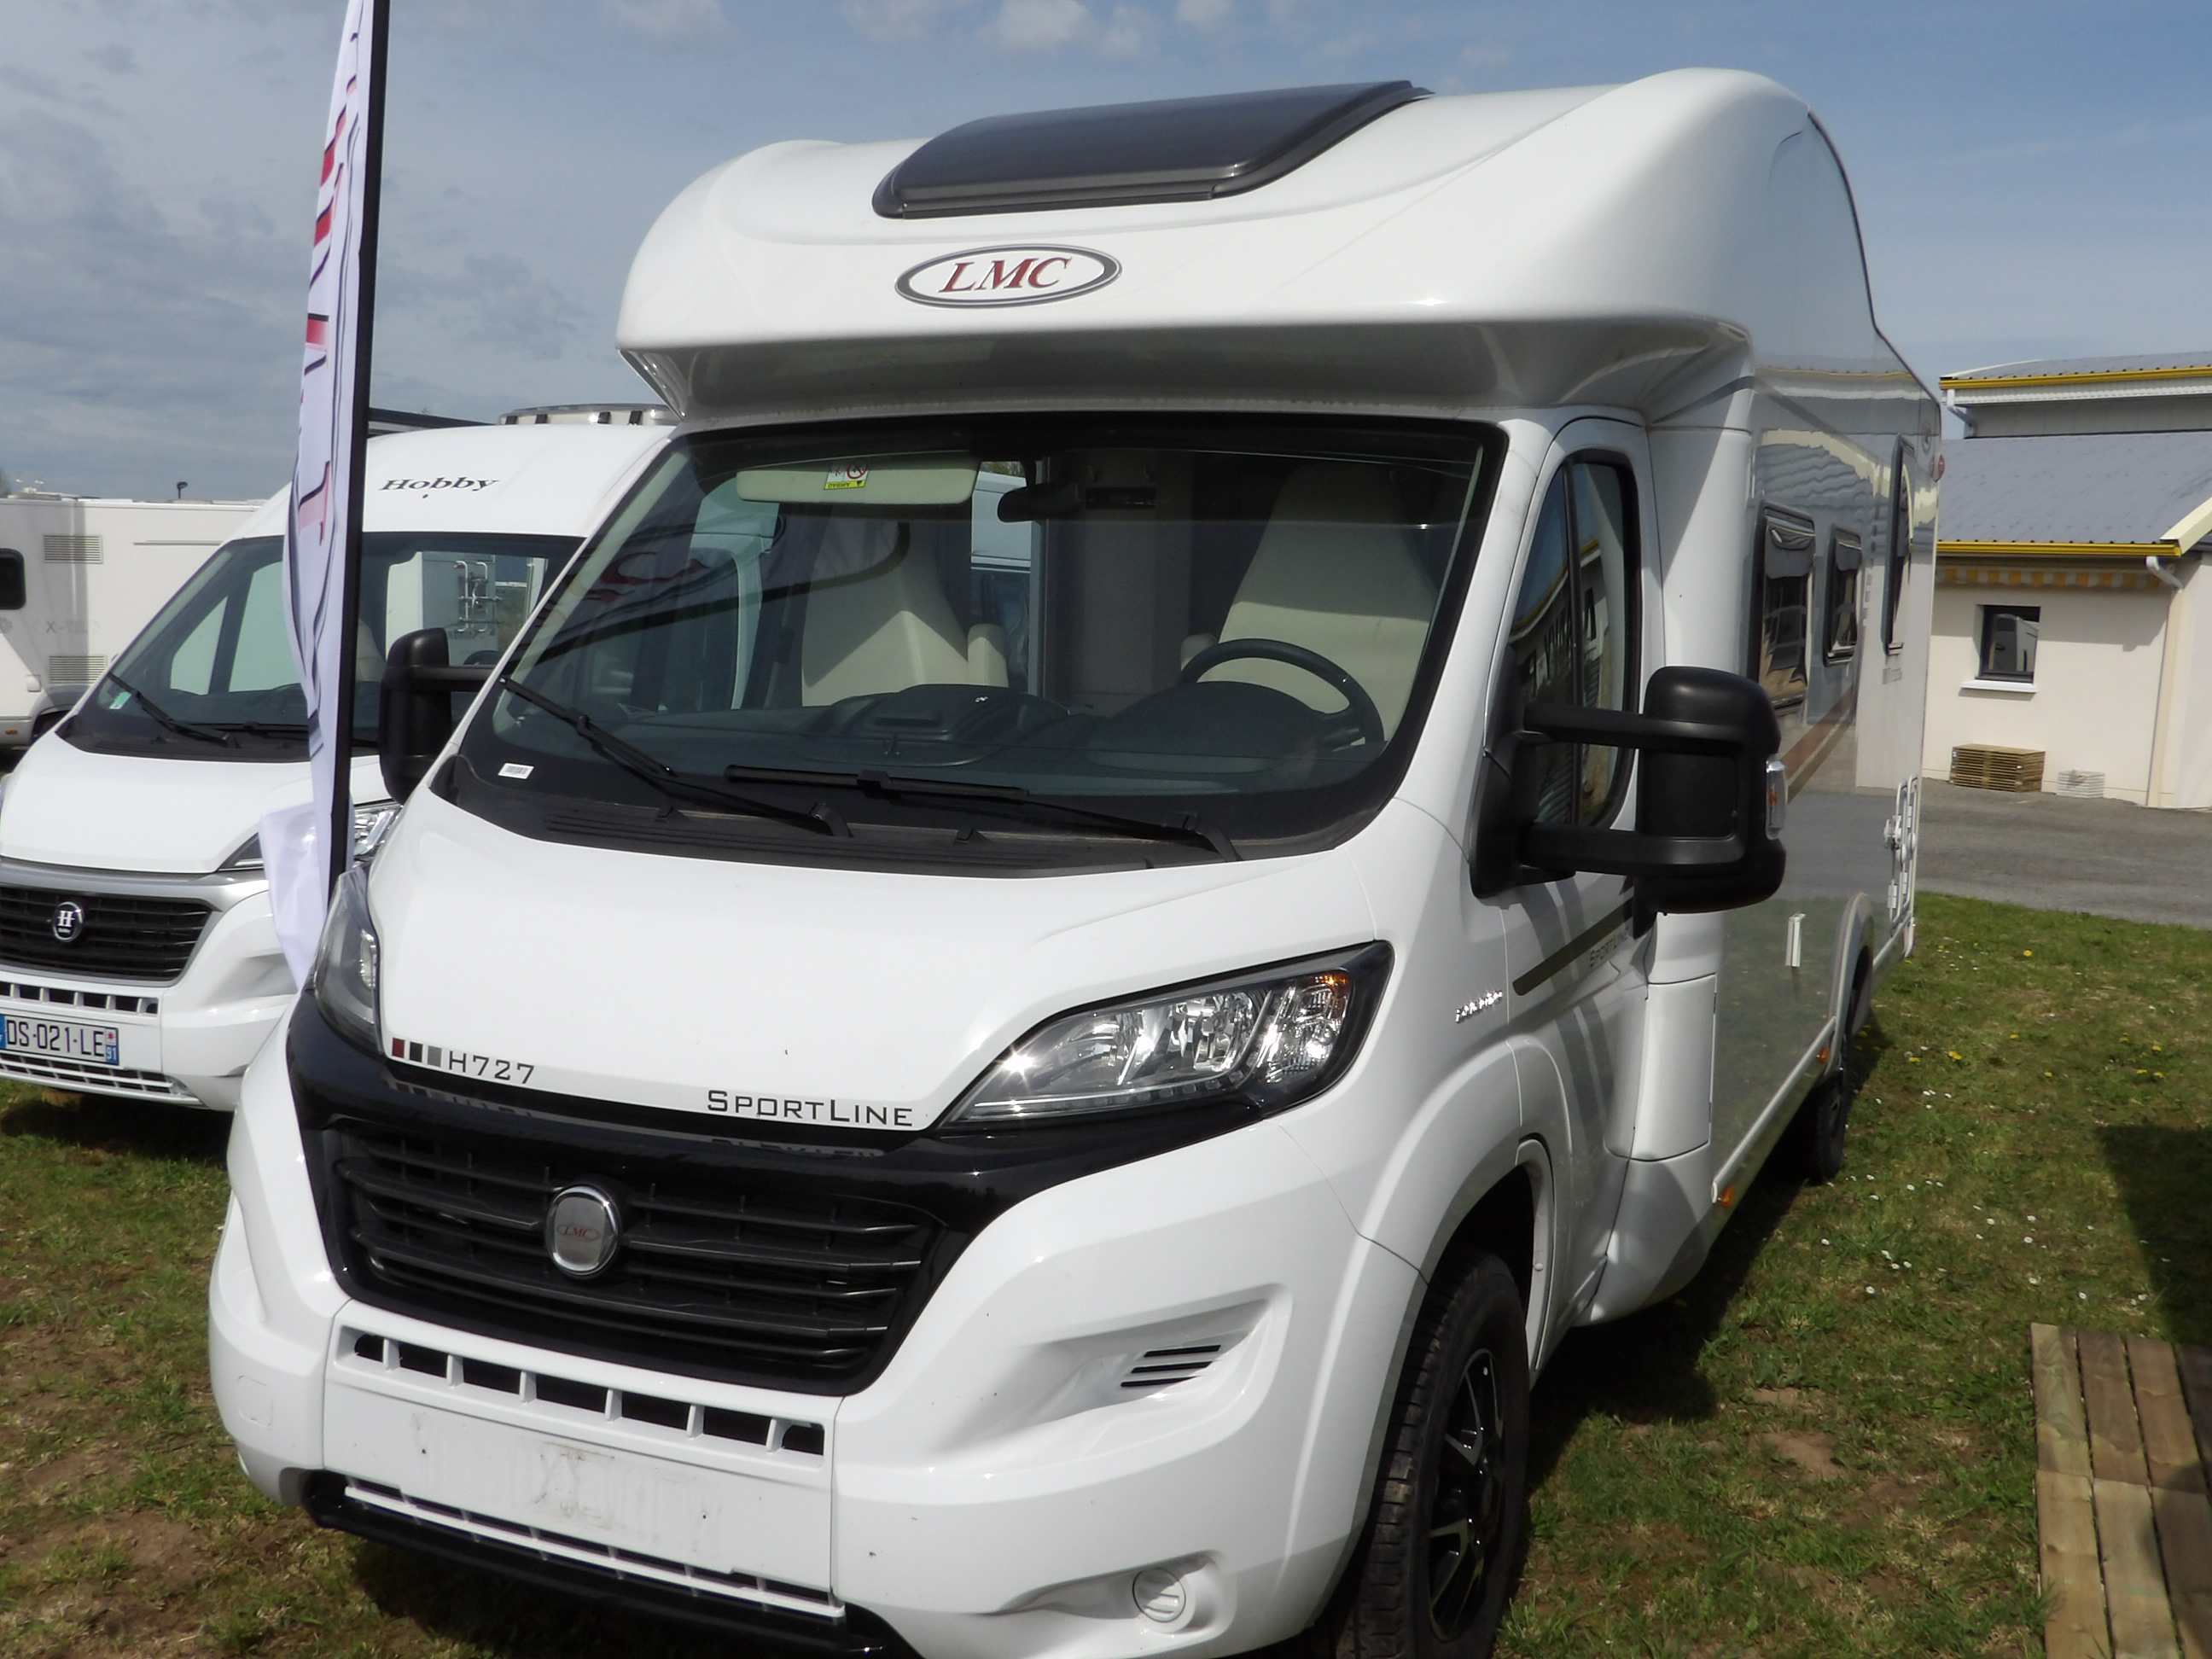 lmc breezer h 727 neuf de 2016 fiat camping car en vente locoal mendon sortie 36 morbihan. Black Bedroom Furniture Sets. Home Design Ideas